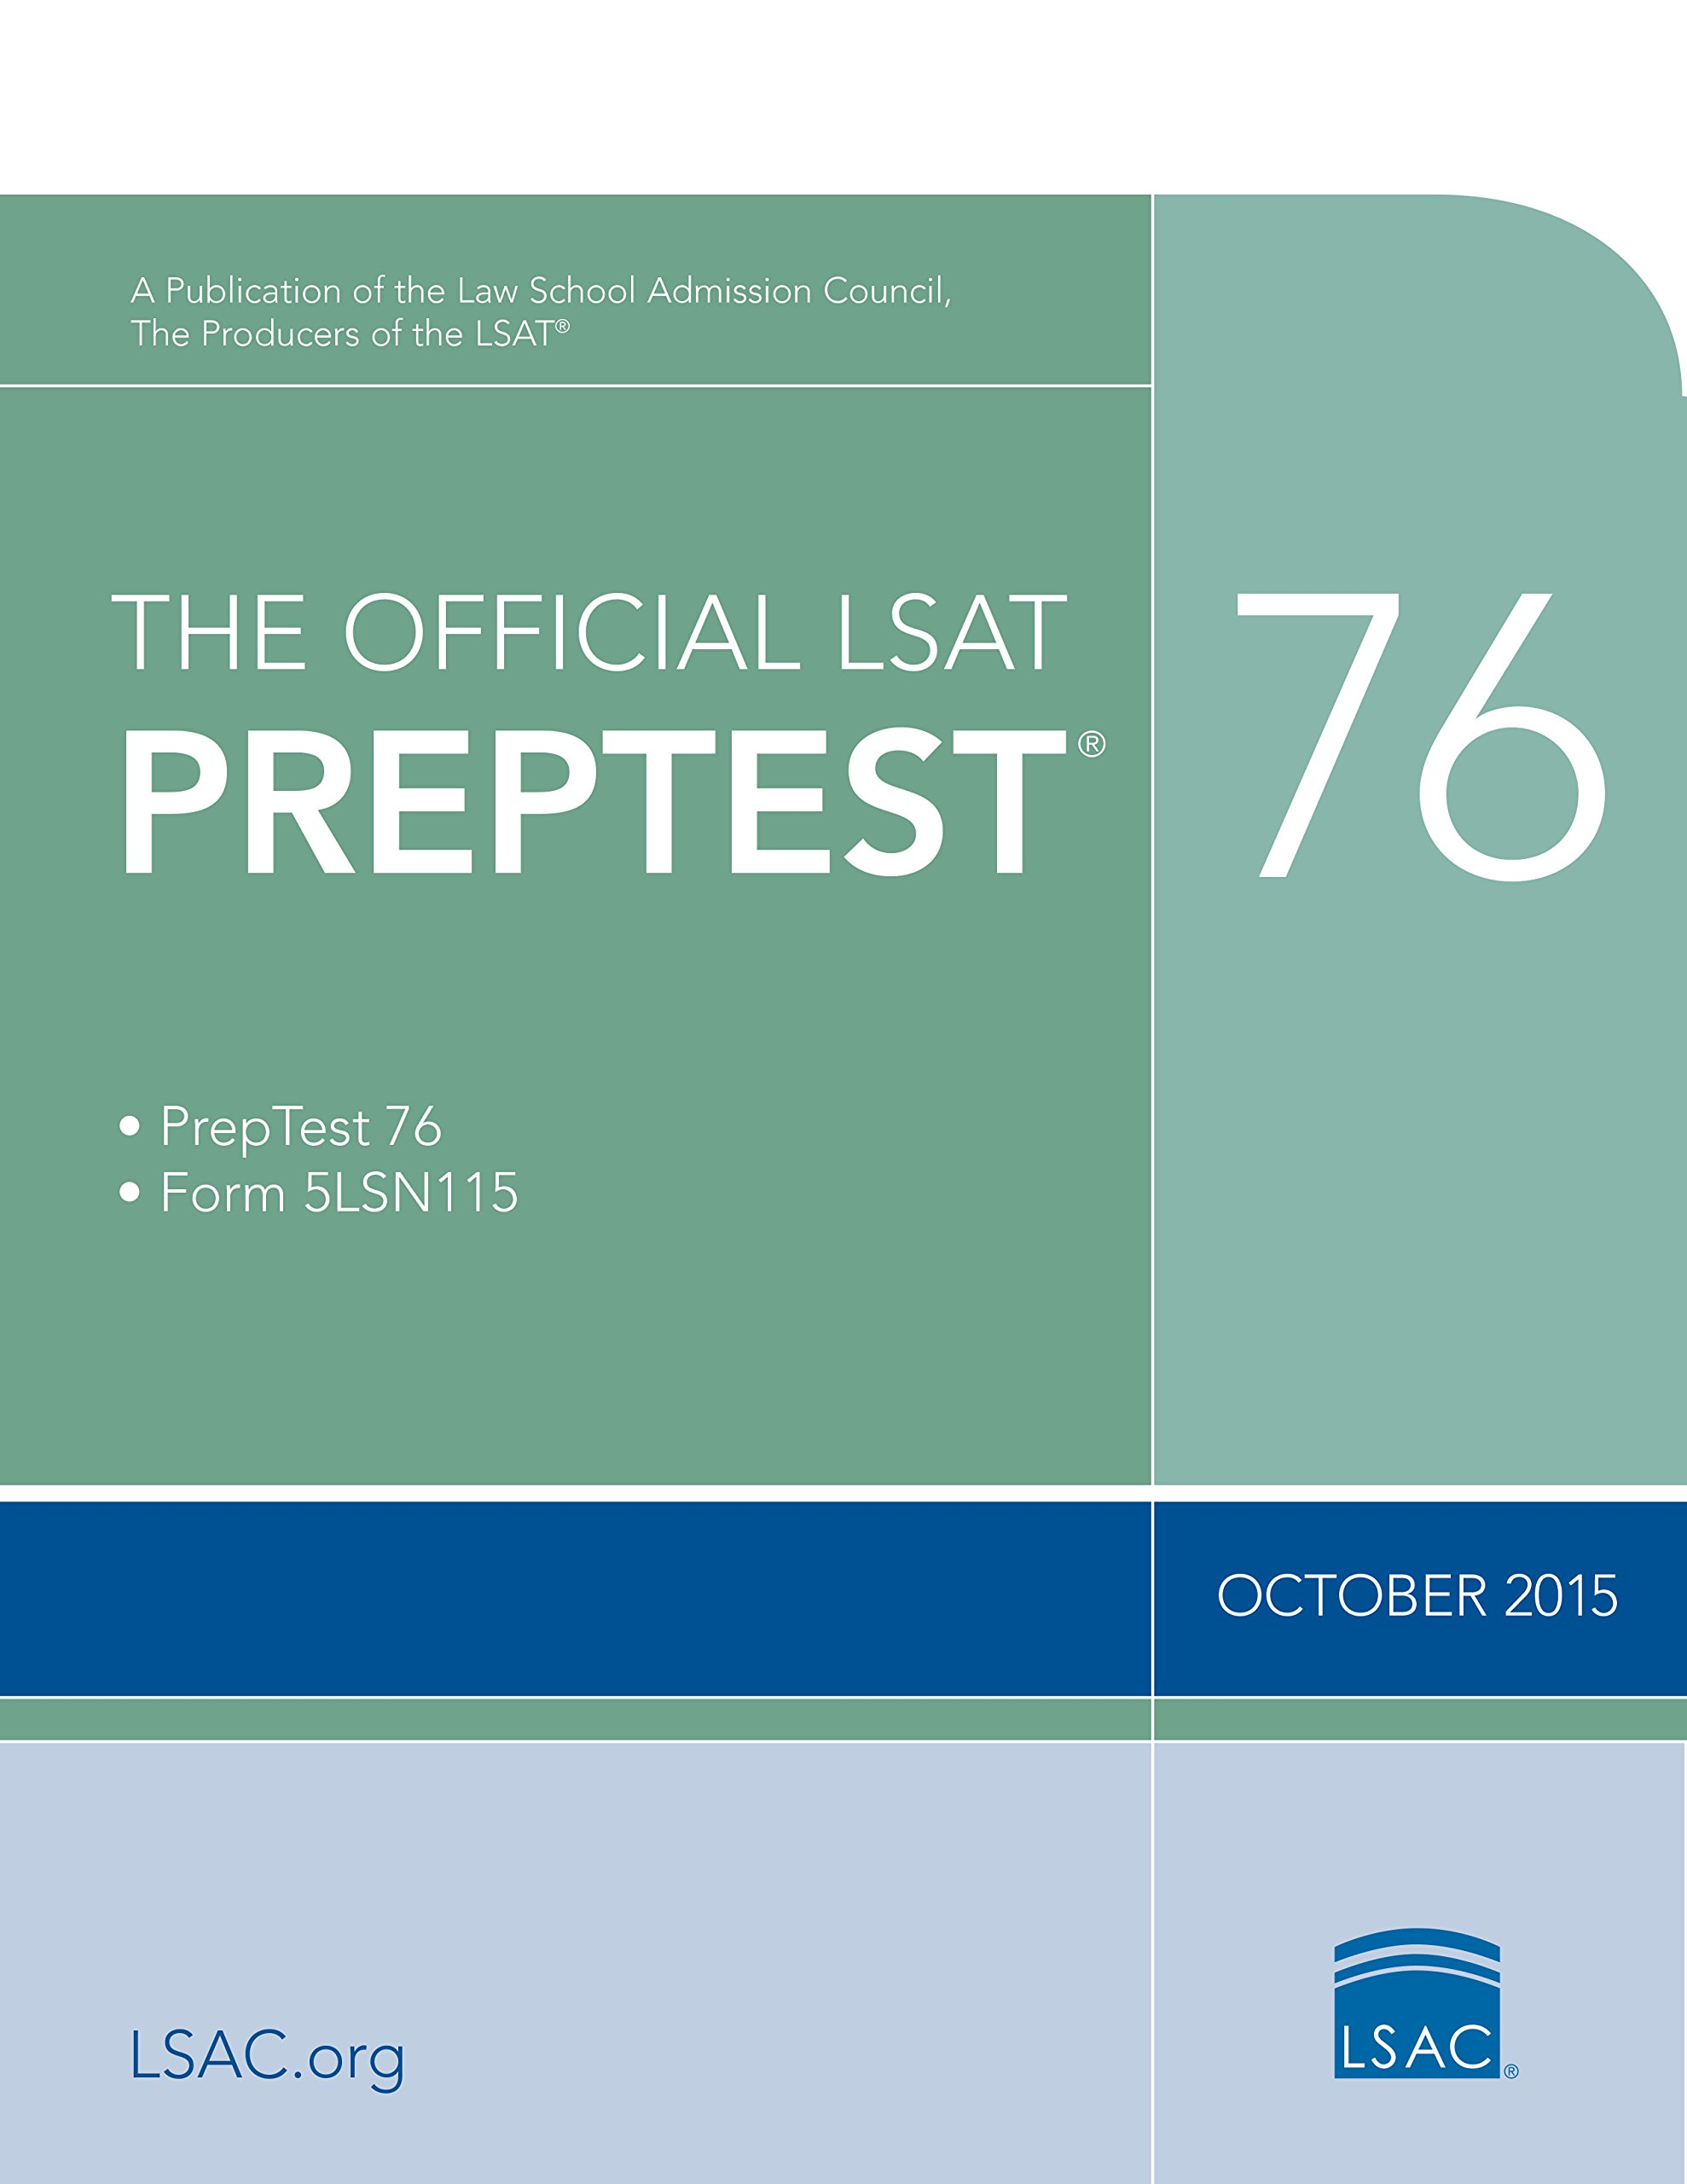 Buy The Official LSAT Preptest: October 2015 Book Online at Low Prices in  India | The Official LSAT Preptest: October 2015 Reviews & Ratings -  Amazon.in